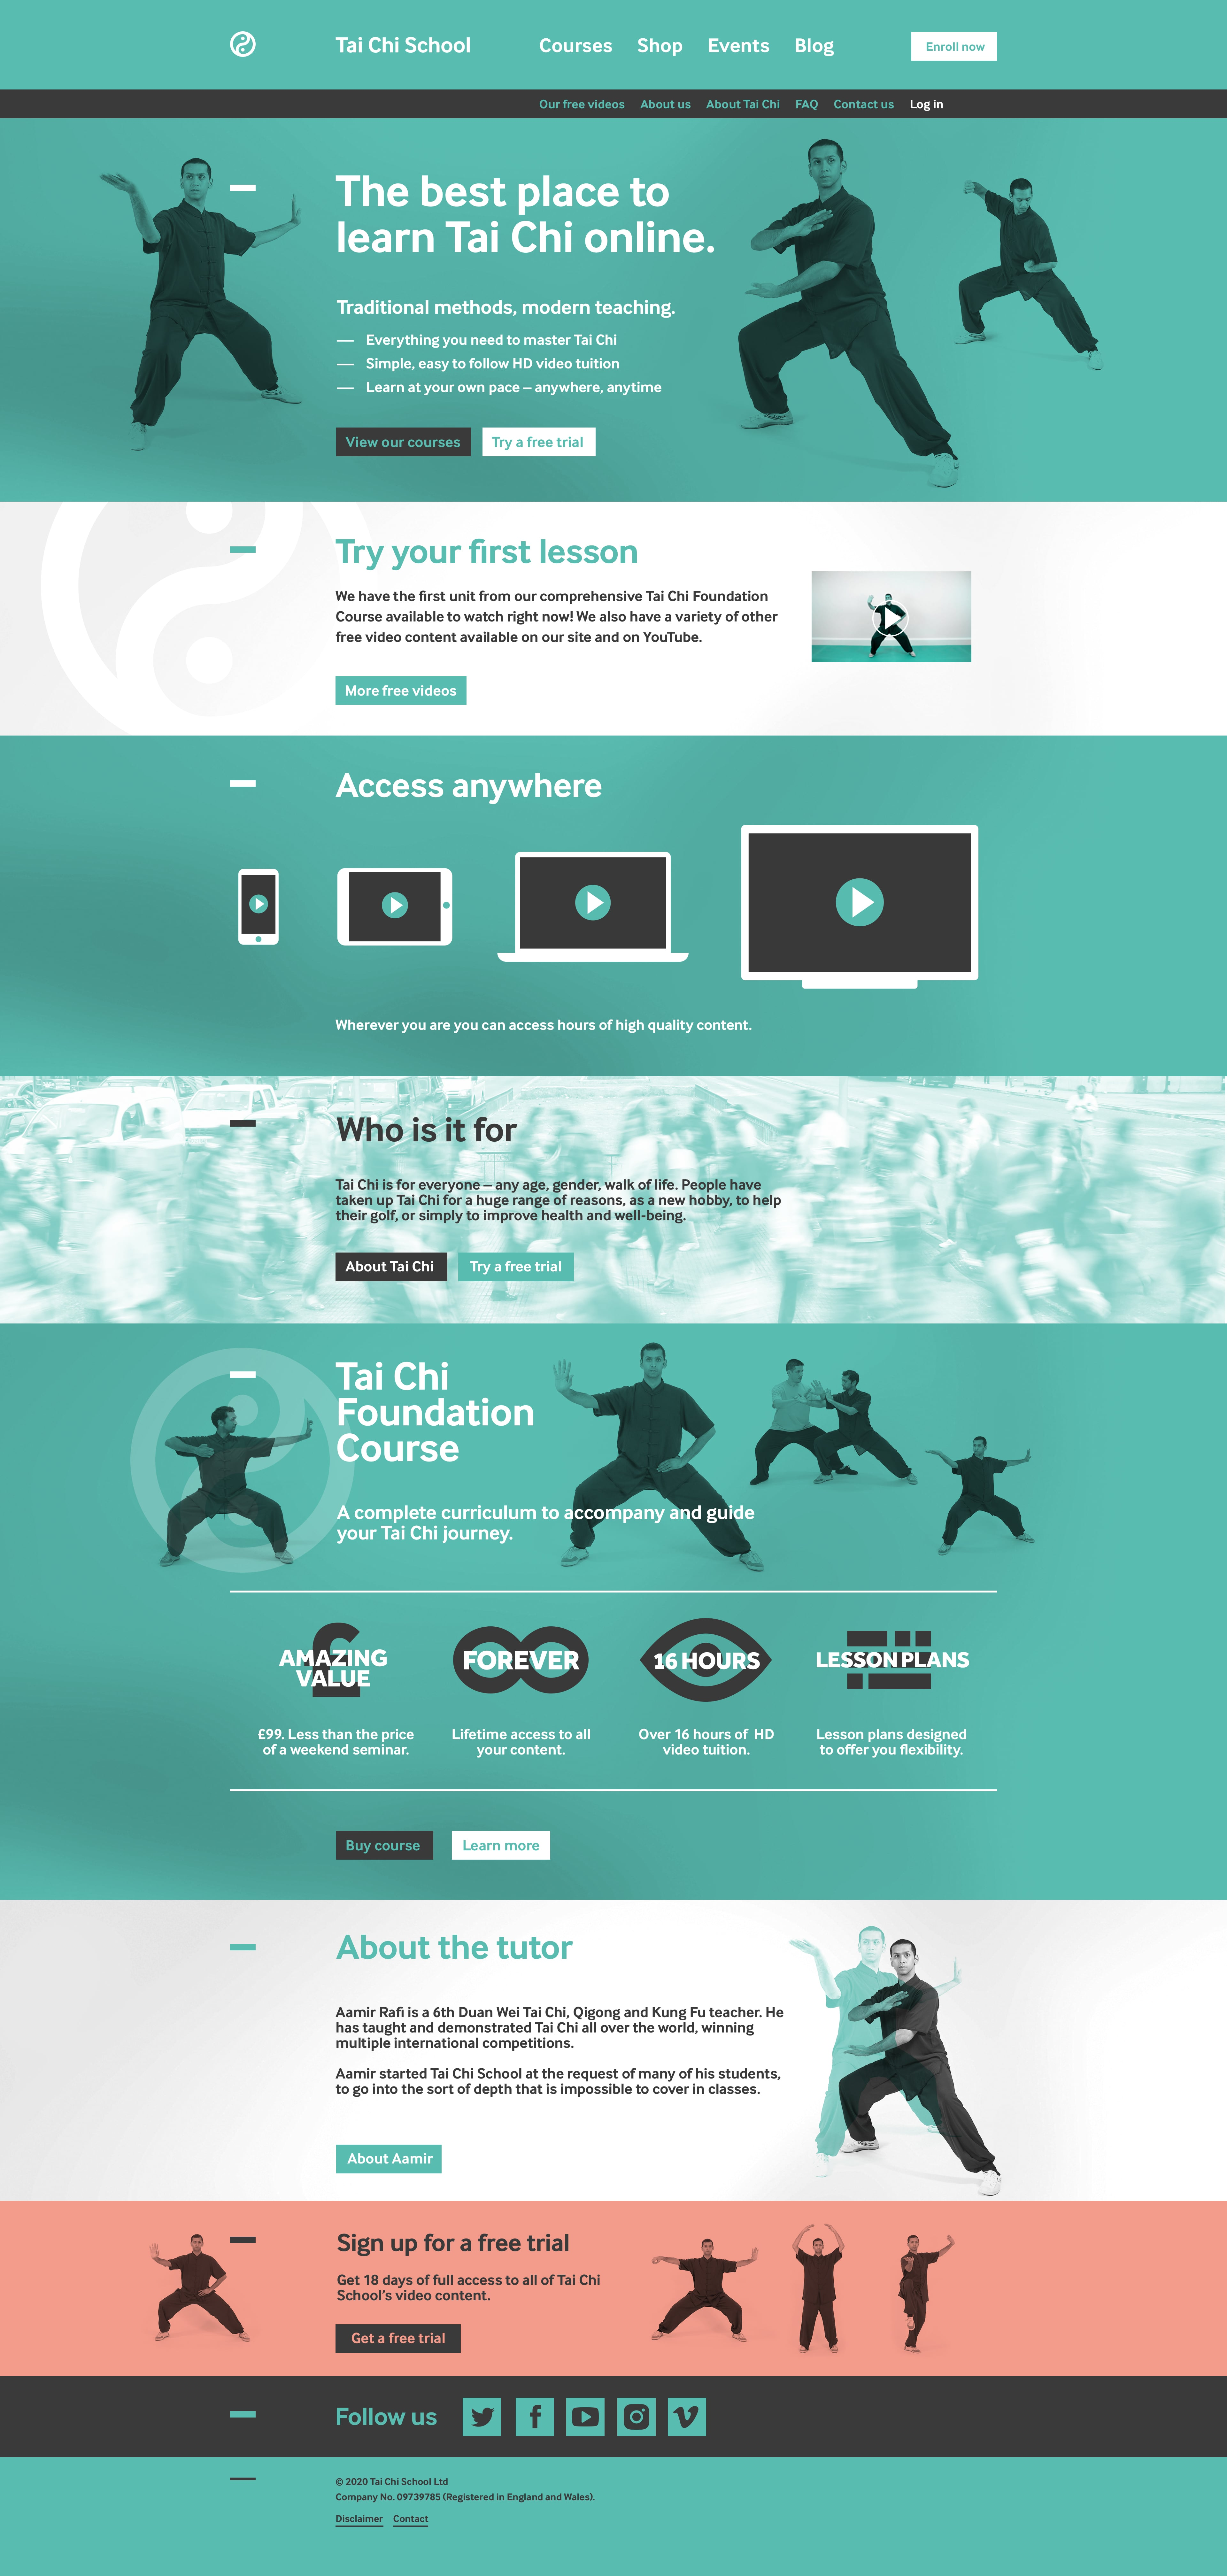 Tai Chi School website homepahge in full. The design is mostly teal with dark grey details and white type, though several blocks reverse this. A coral colour is used to draw attention to a free trial near the end.